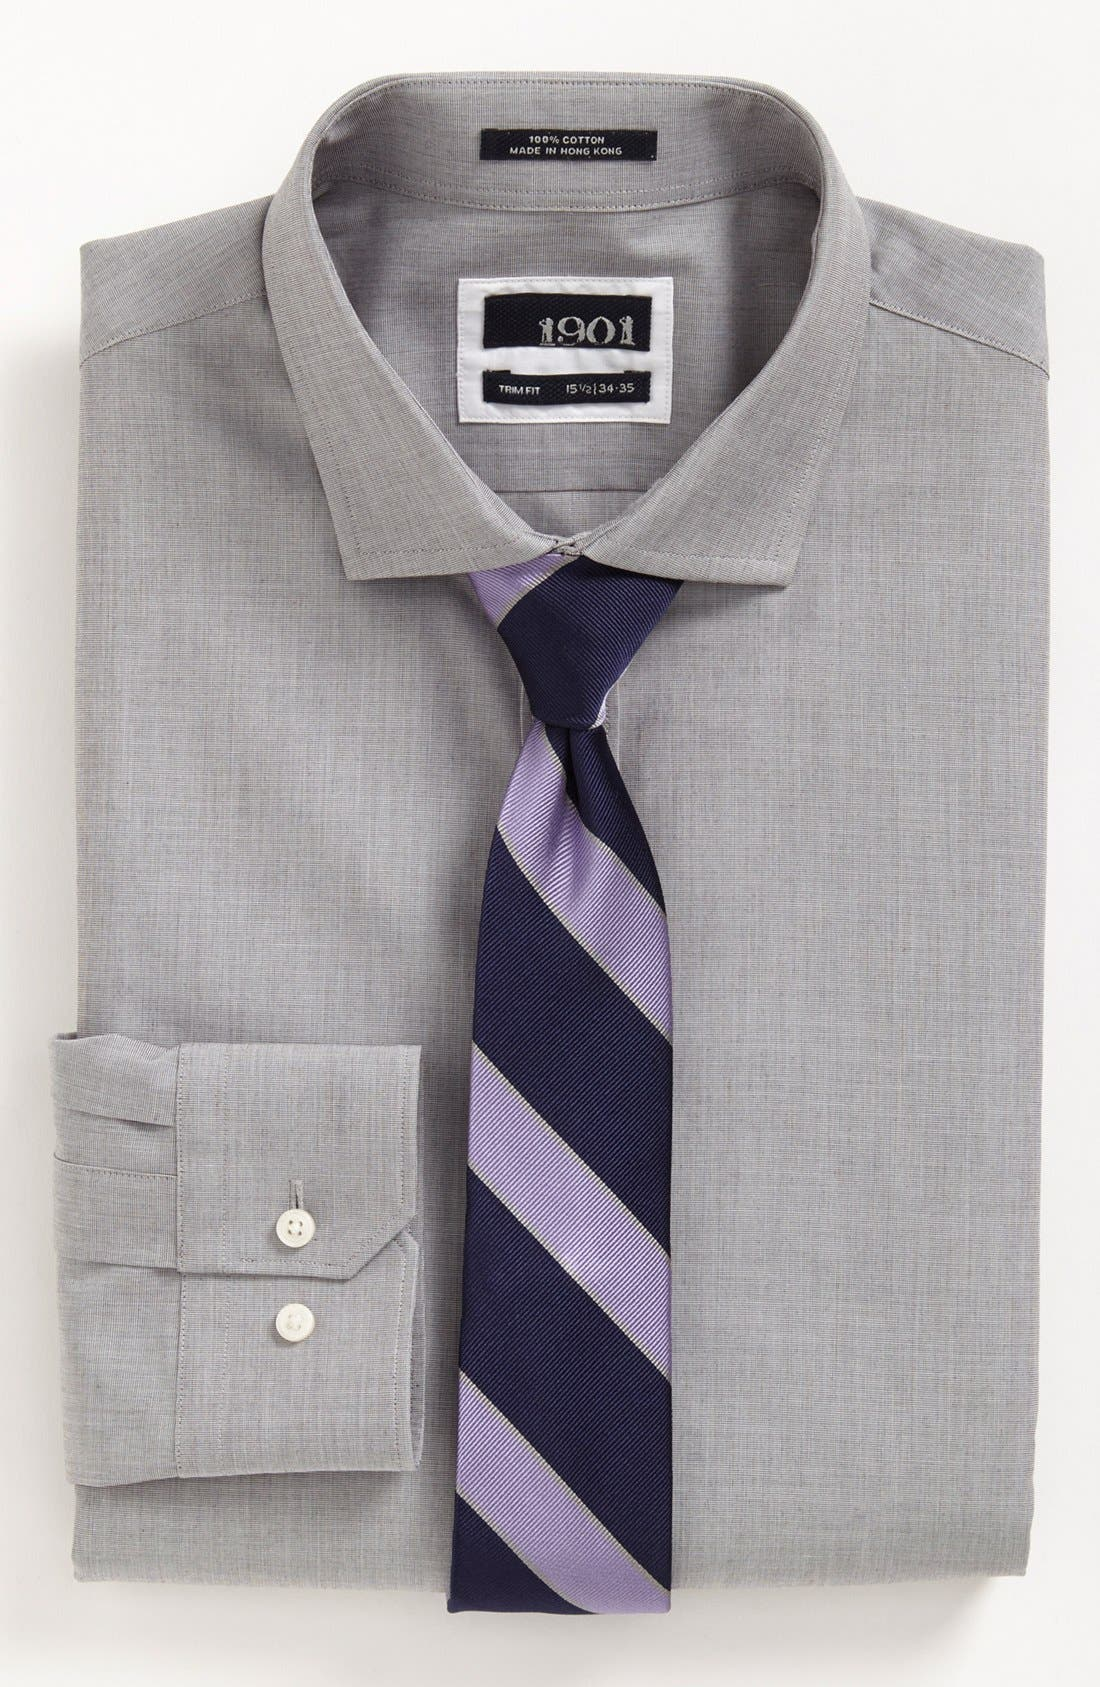 1901 Dress Shirt & Tie,                             Alternate thumbnail 2, color,                             020